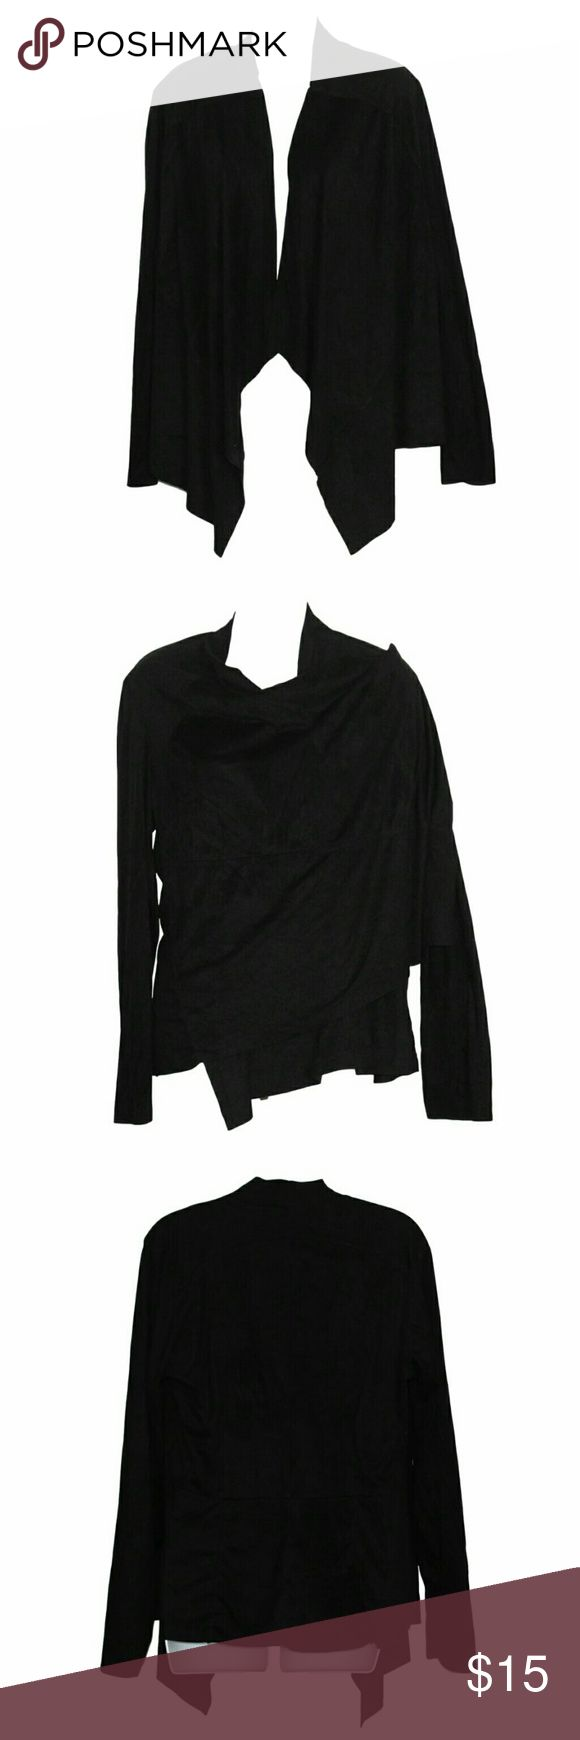 Black Super Soft Open Front Hi-Lo Women's Cardigan ℹSoft to the touch, faux suede like swing cardigan  ℹCondition: gently worn, washed in natural detergent for sensitive skin  ℹColor: Black  ℹFeatures: swing front flaps, can be worn over shoulder  ℹMaterial: 92% polyester, 8% spandex, super soft  ℹSize: Large  ℹFor measurements please see photos Tops